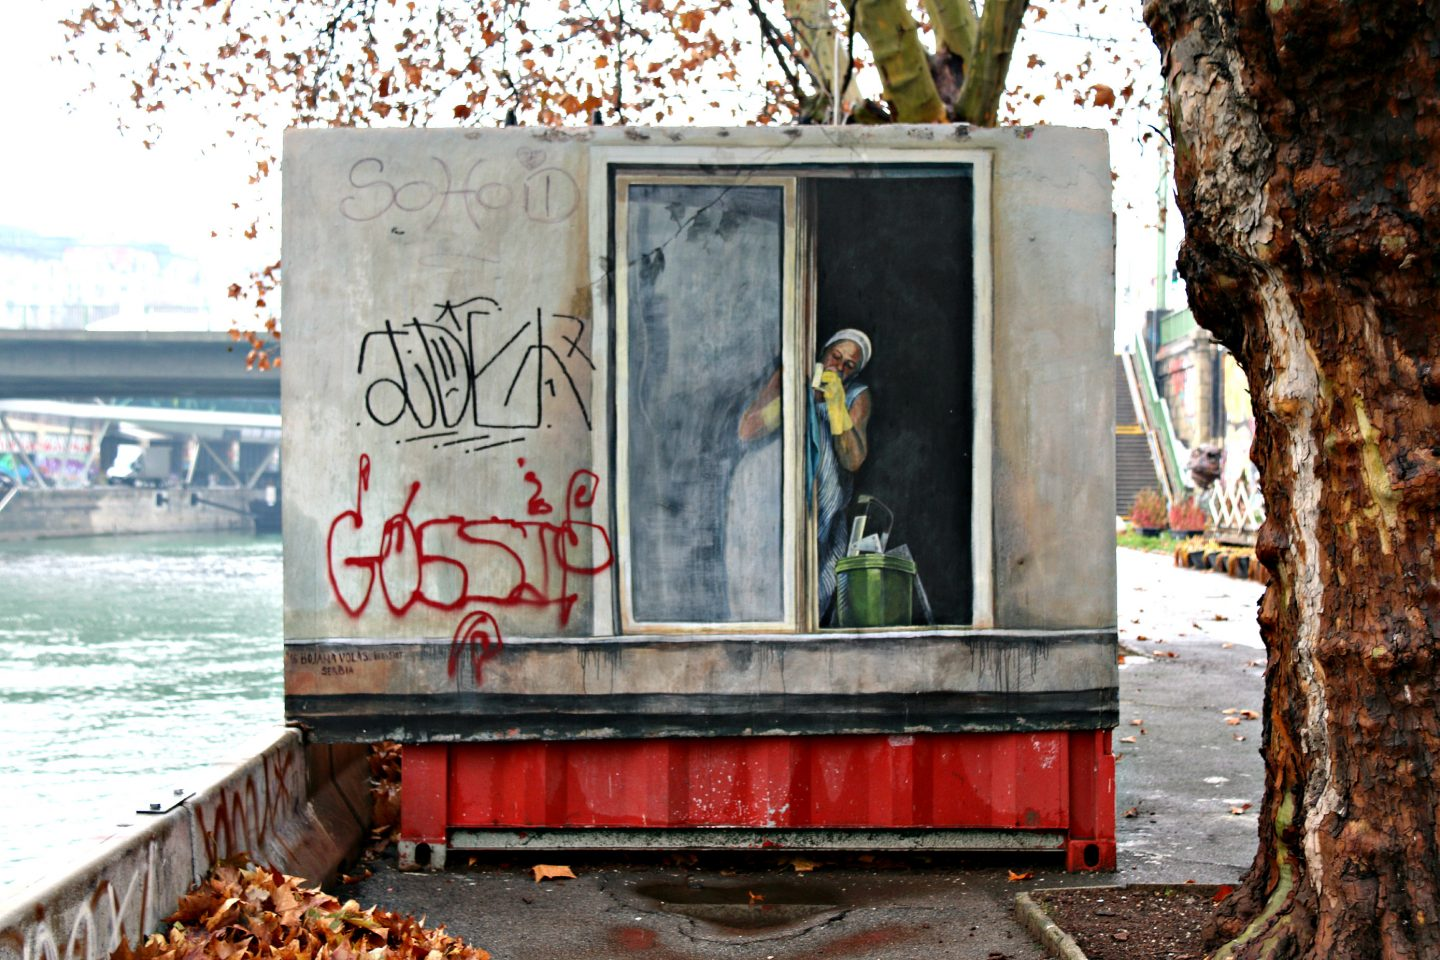 Vienna street art by the canal 8